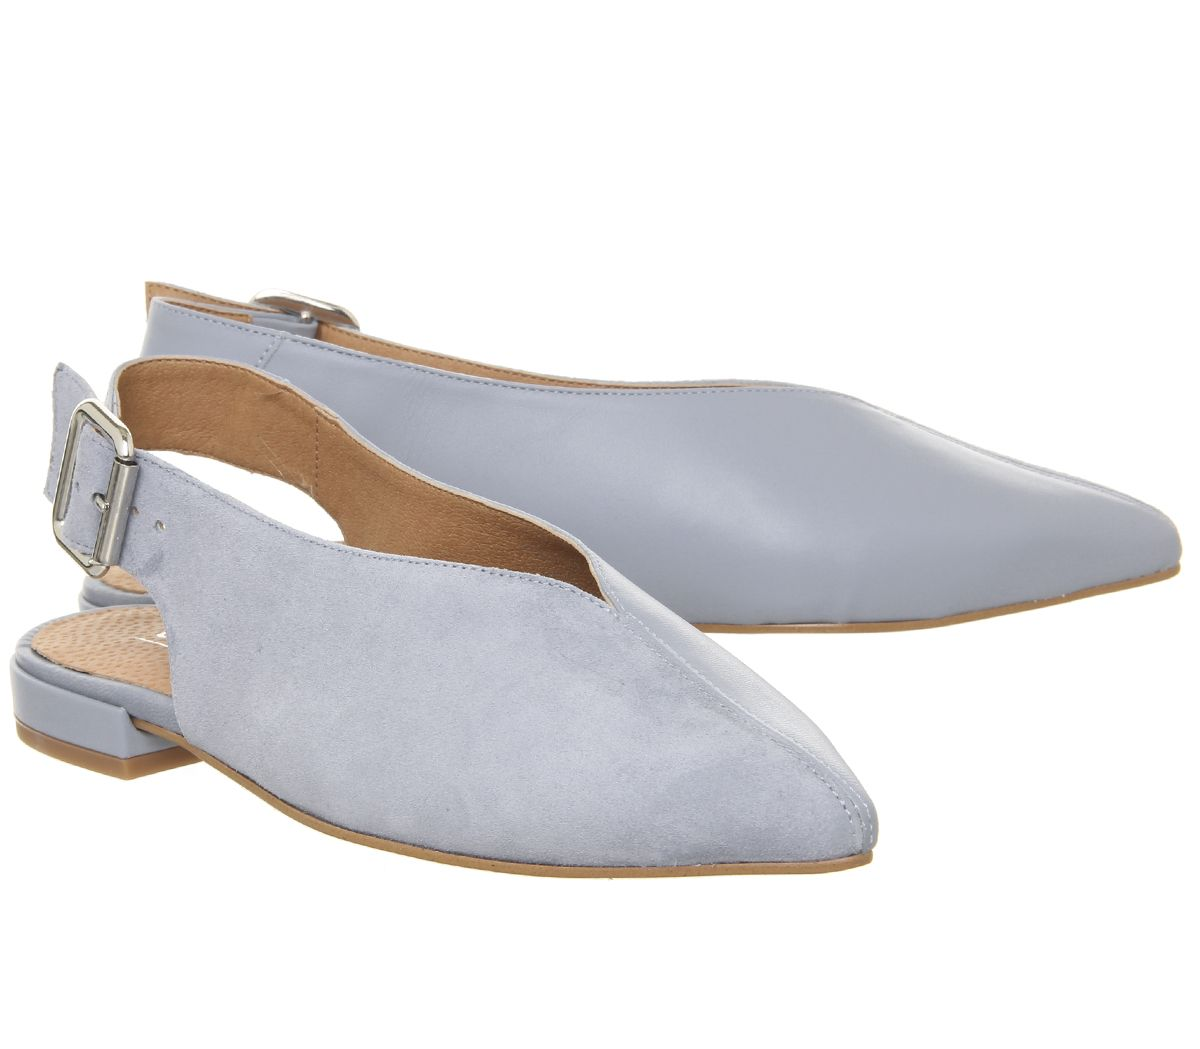 e20f7a5860b5a Details about Womens Office Flow Split Slingback Point Flats Blue Leather  With Suede Flats